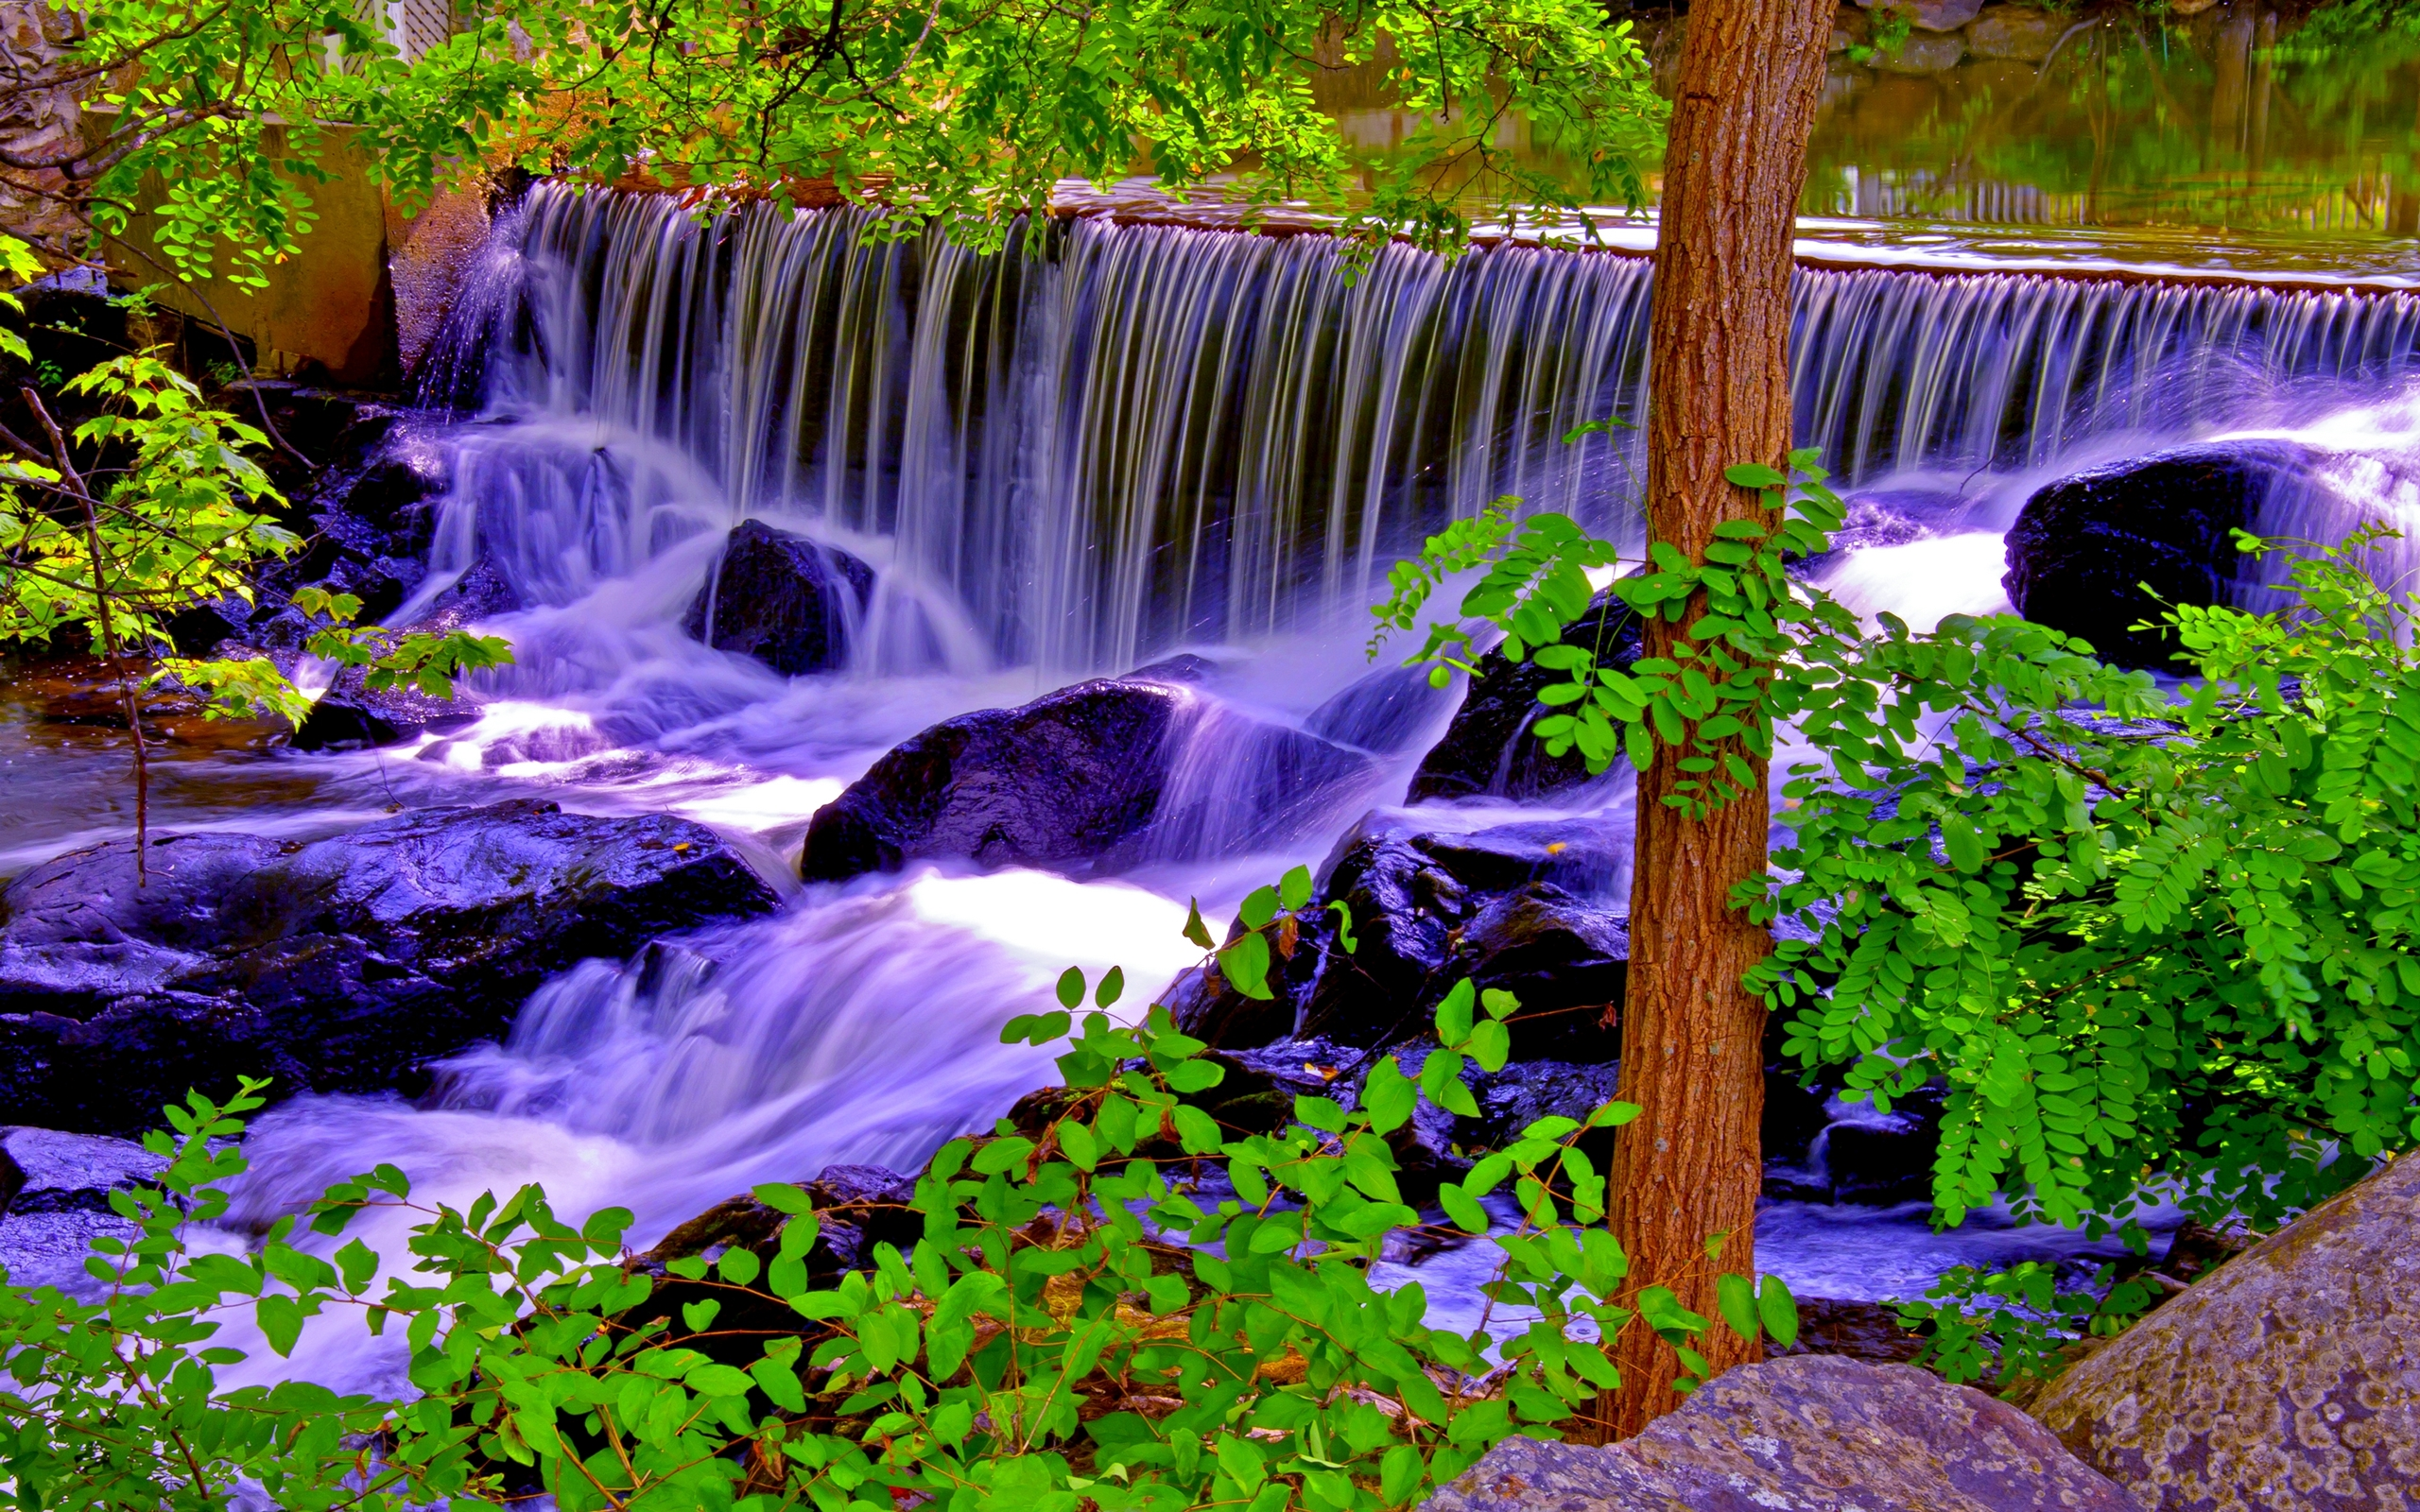 Natural Falls Wallpaper Free Download Forest River Falls Natural Wood Stone 168649 2560x1600